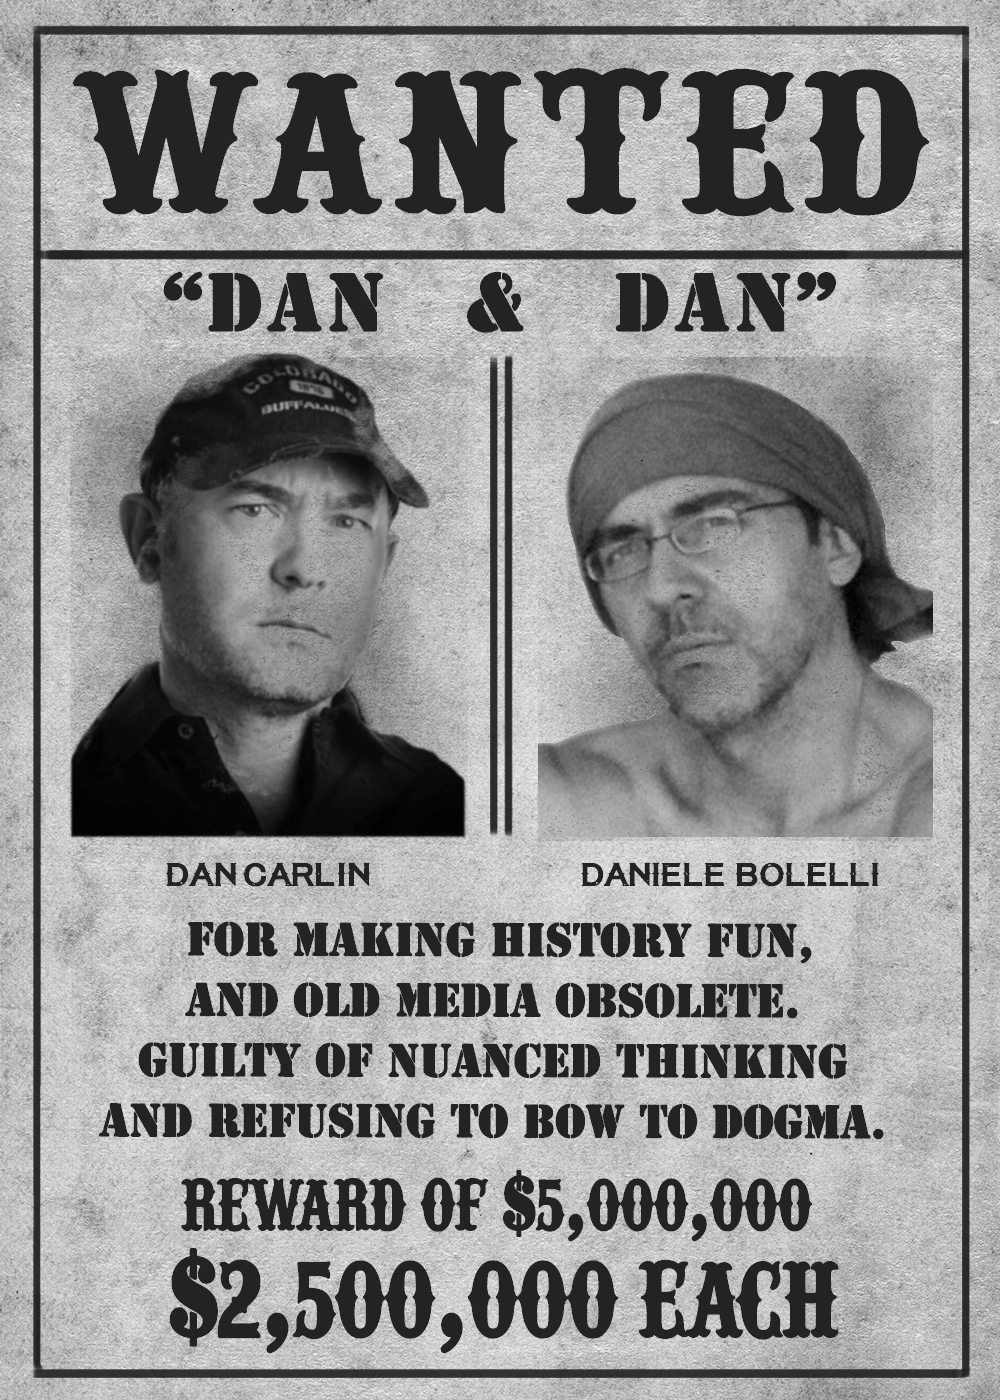 Dan carlin coupon code